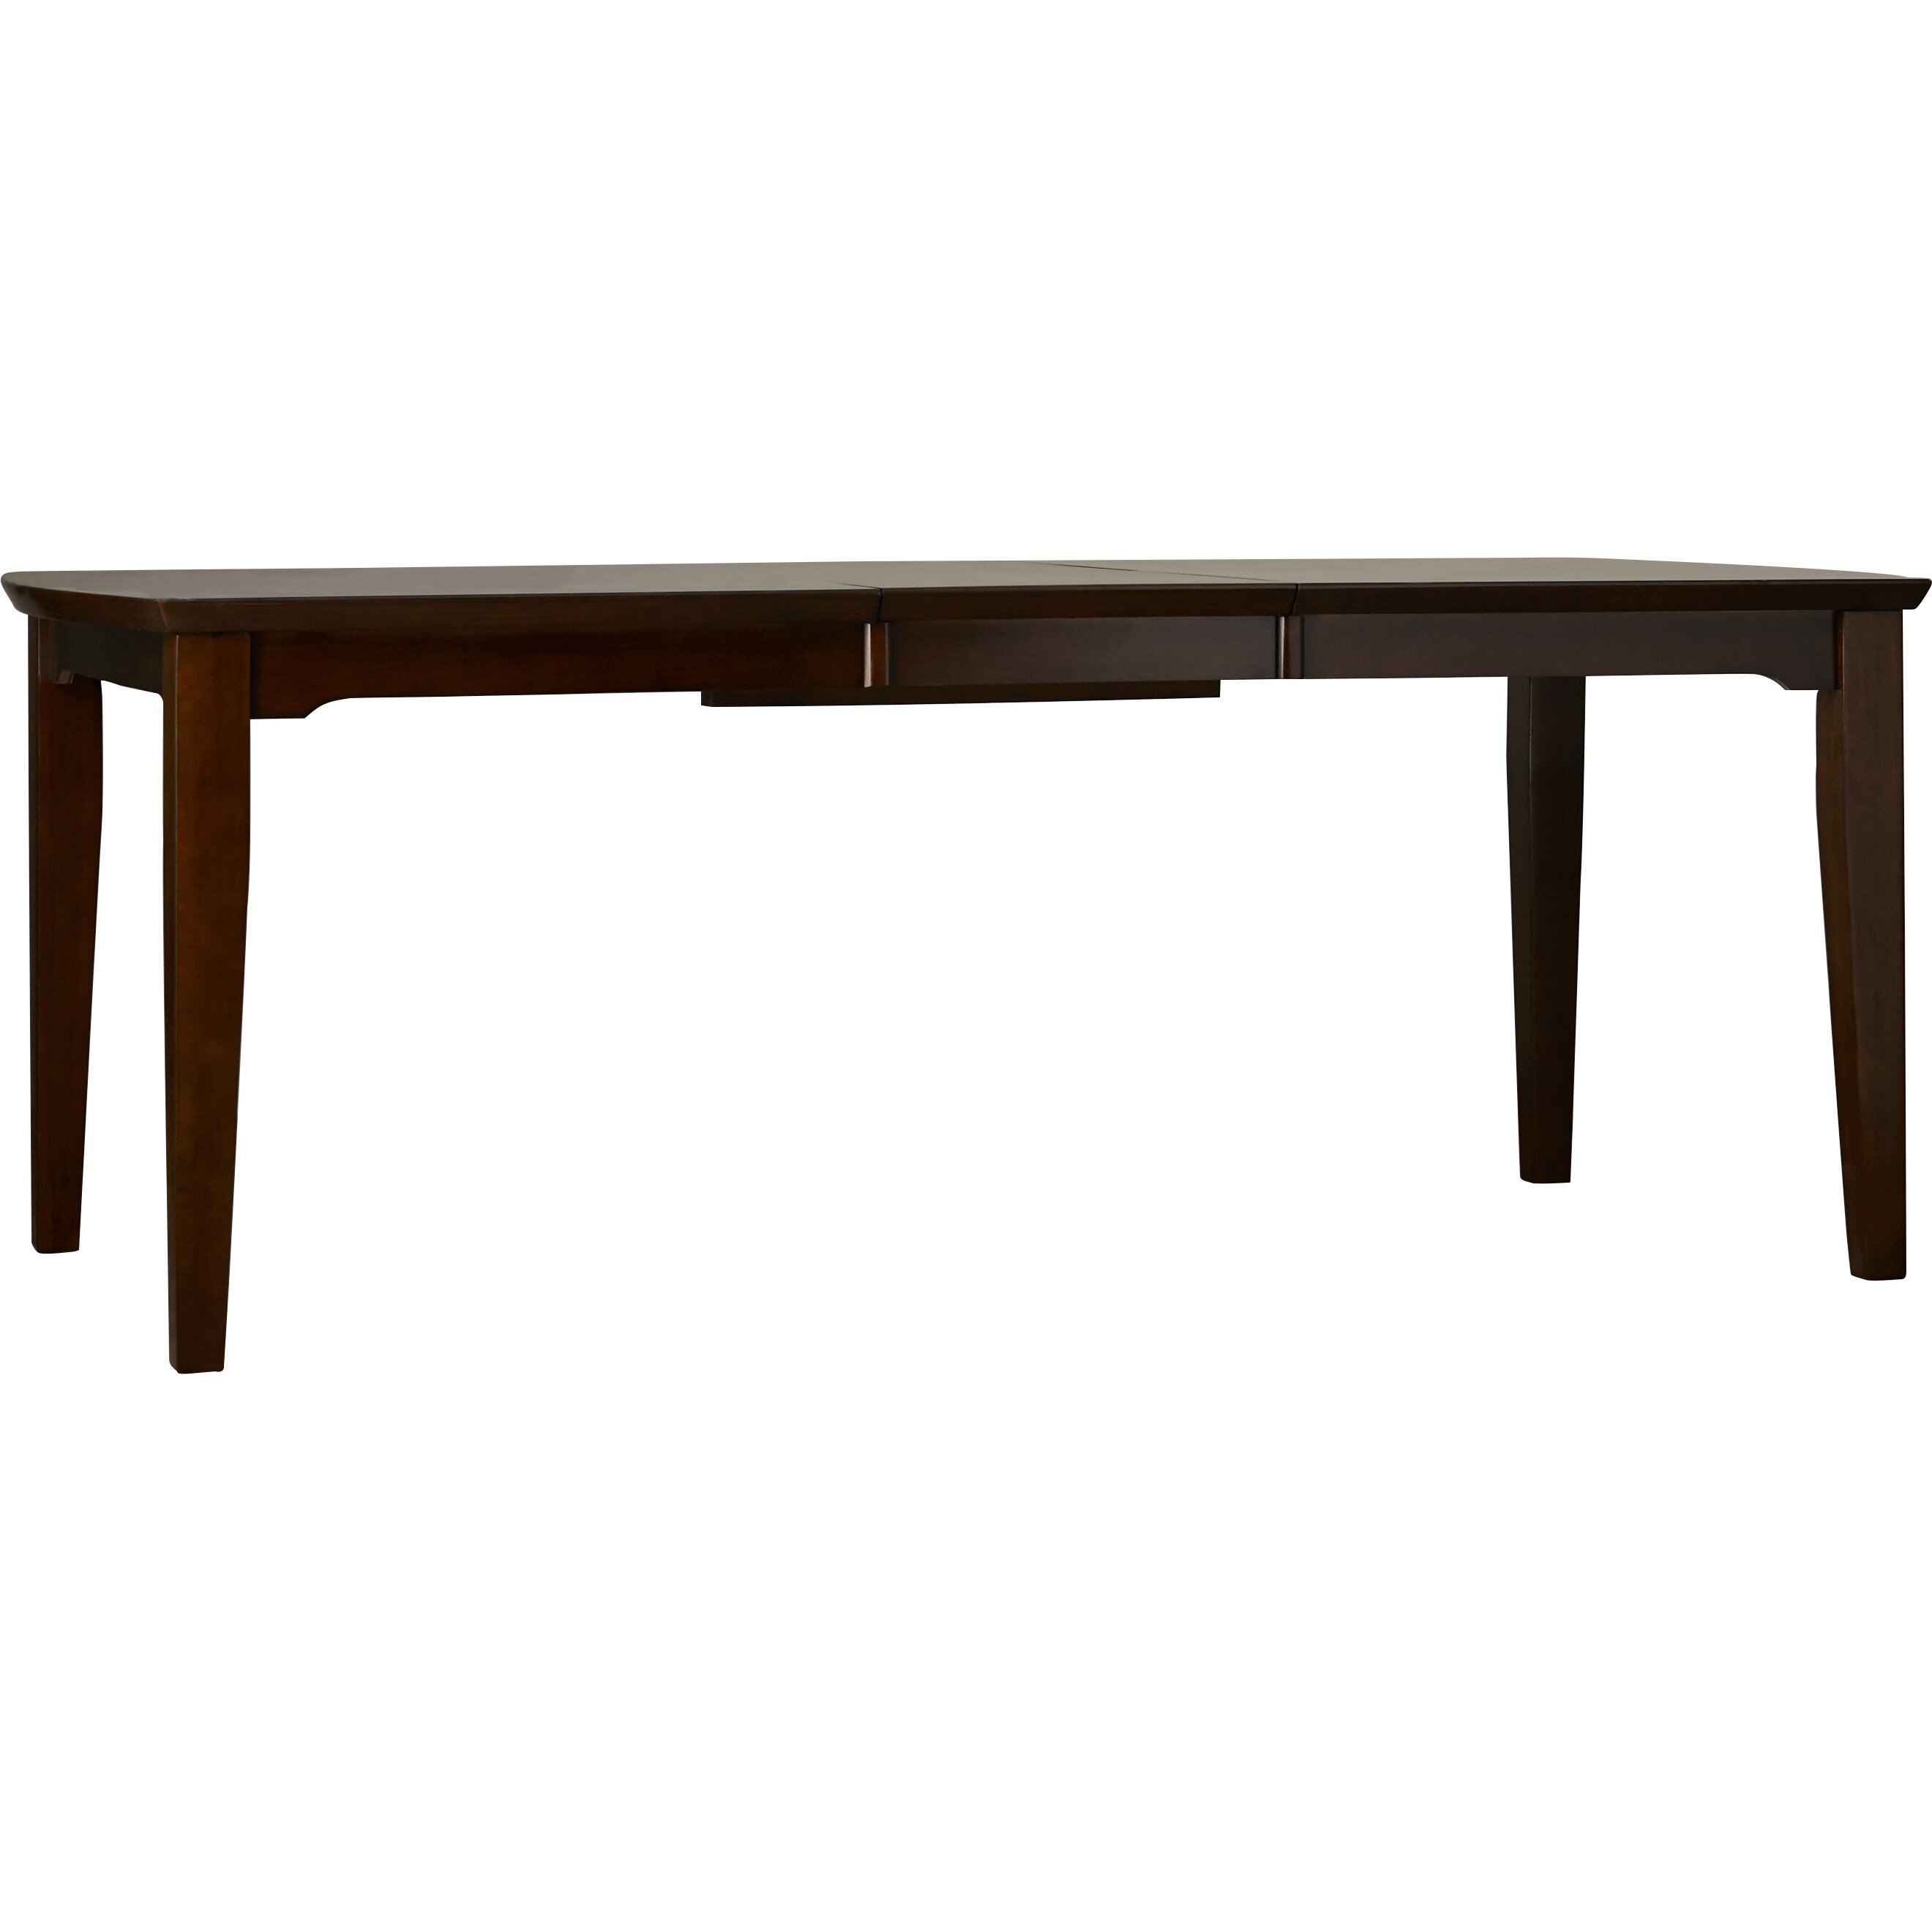 Three Posts Harborcreek Extendable Dining Table amp Reviews  : Harborcreek Extendable Dining Table THRE2452 from www.wayfair.com size 2640 x 2640 jpeg 198kB